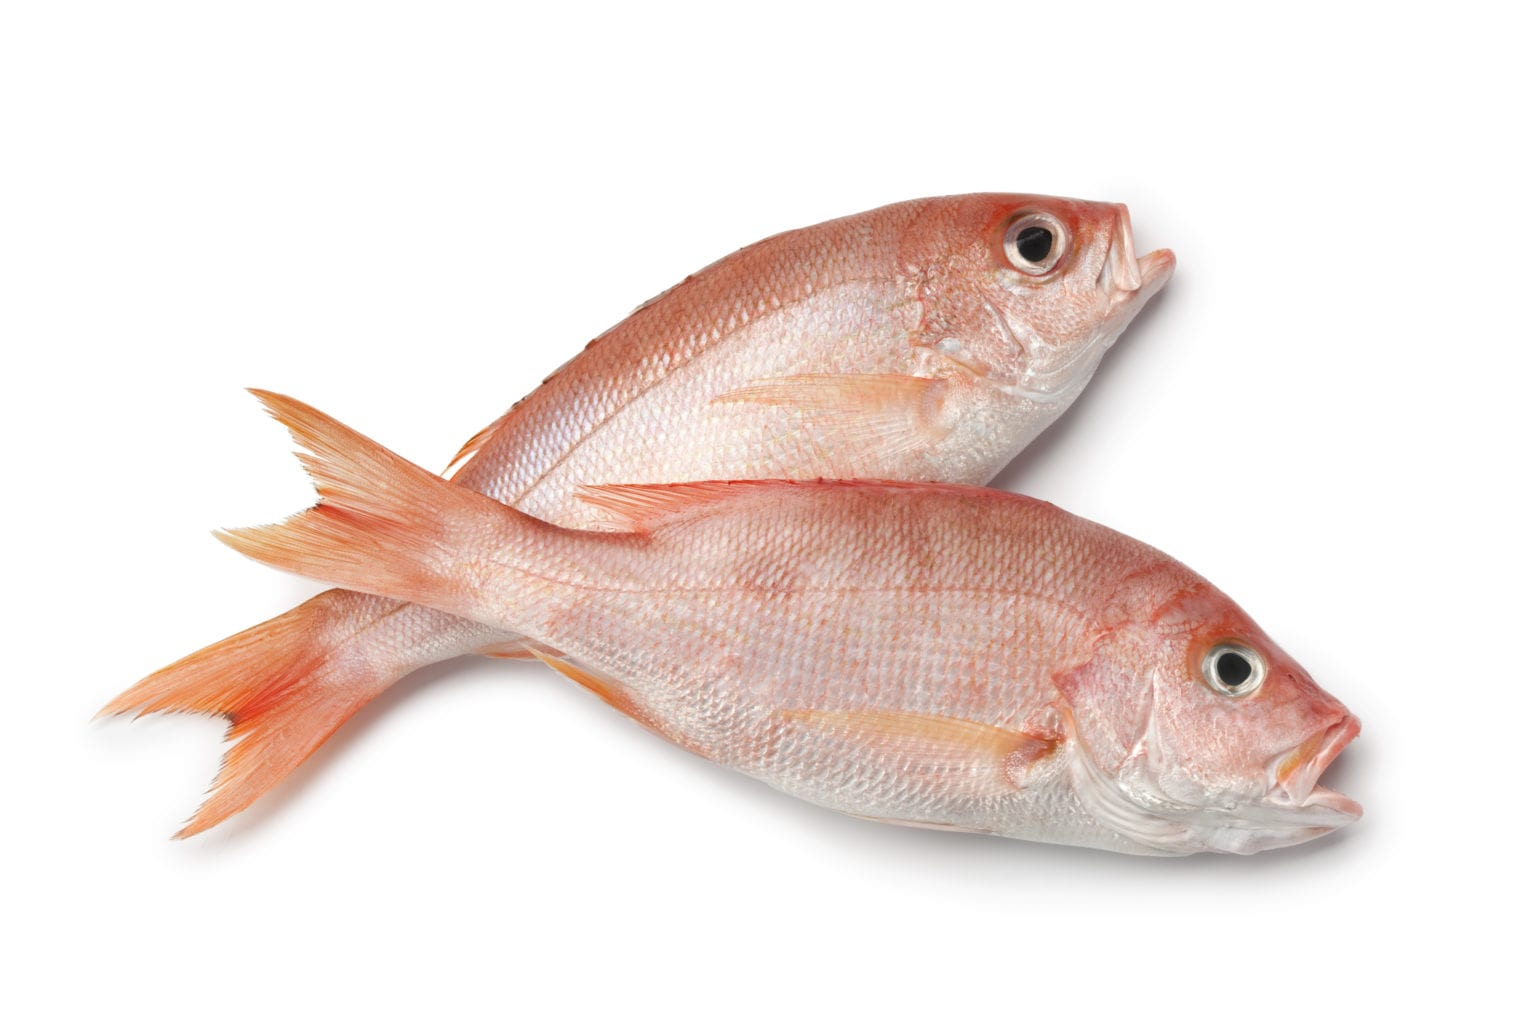 Researchers Begins On Gulf Red Snapper Study